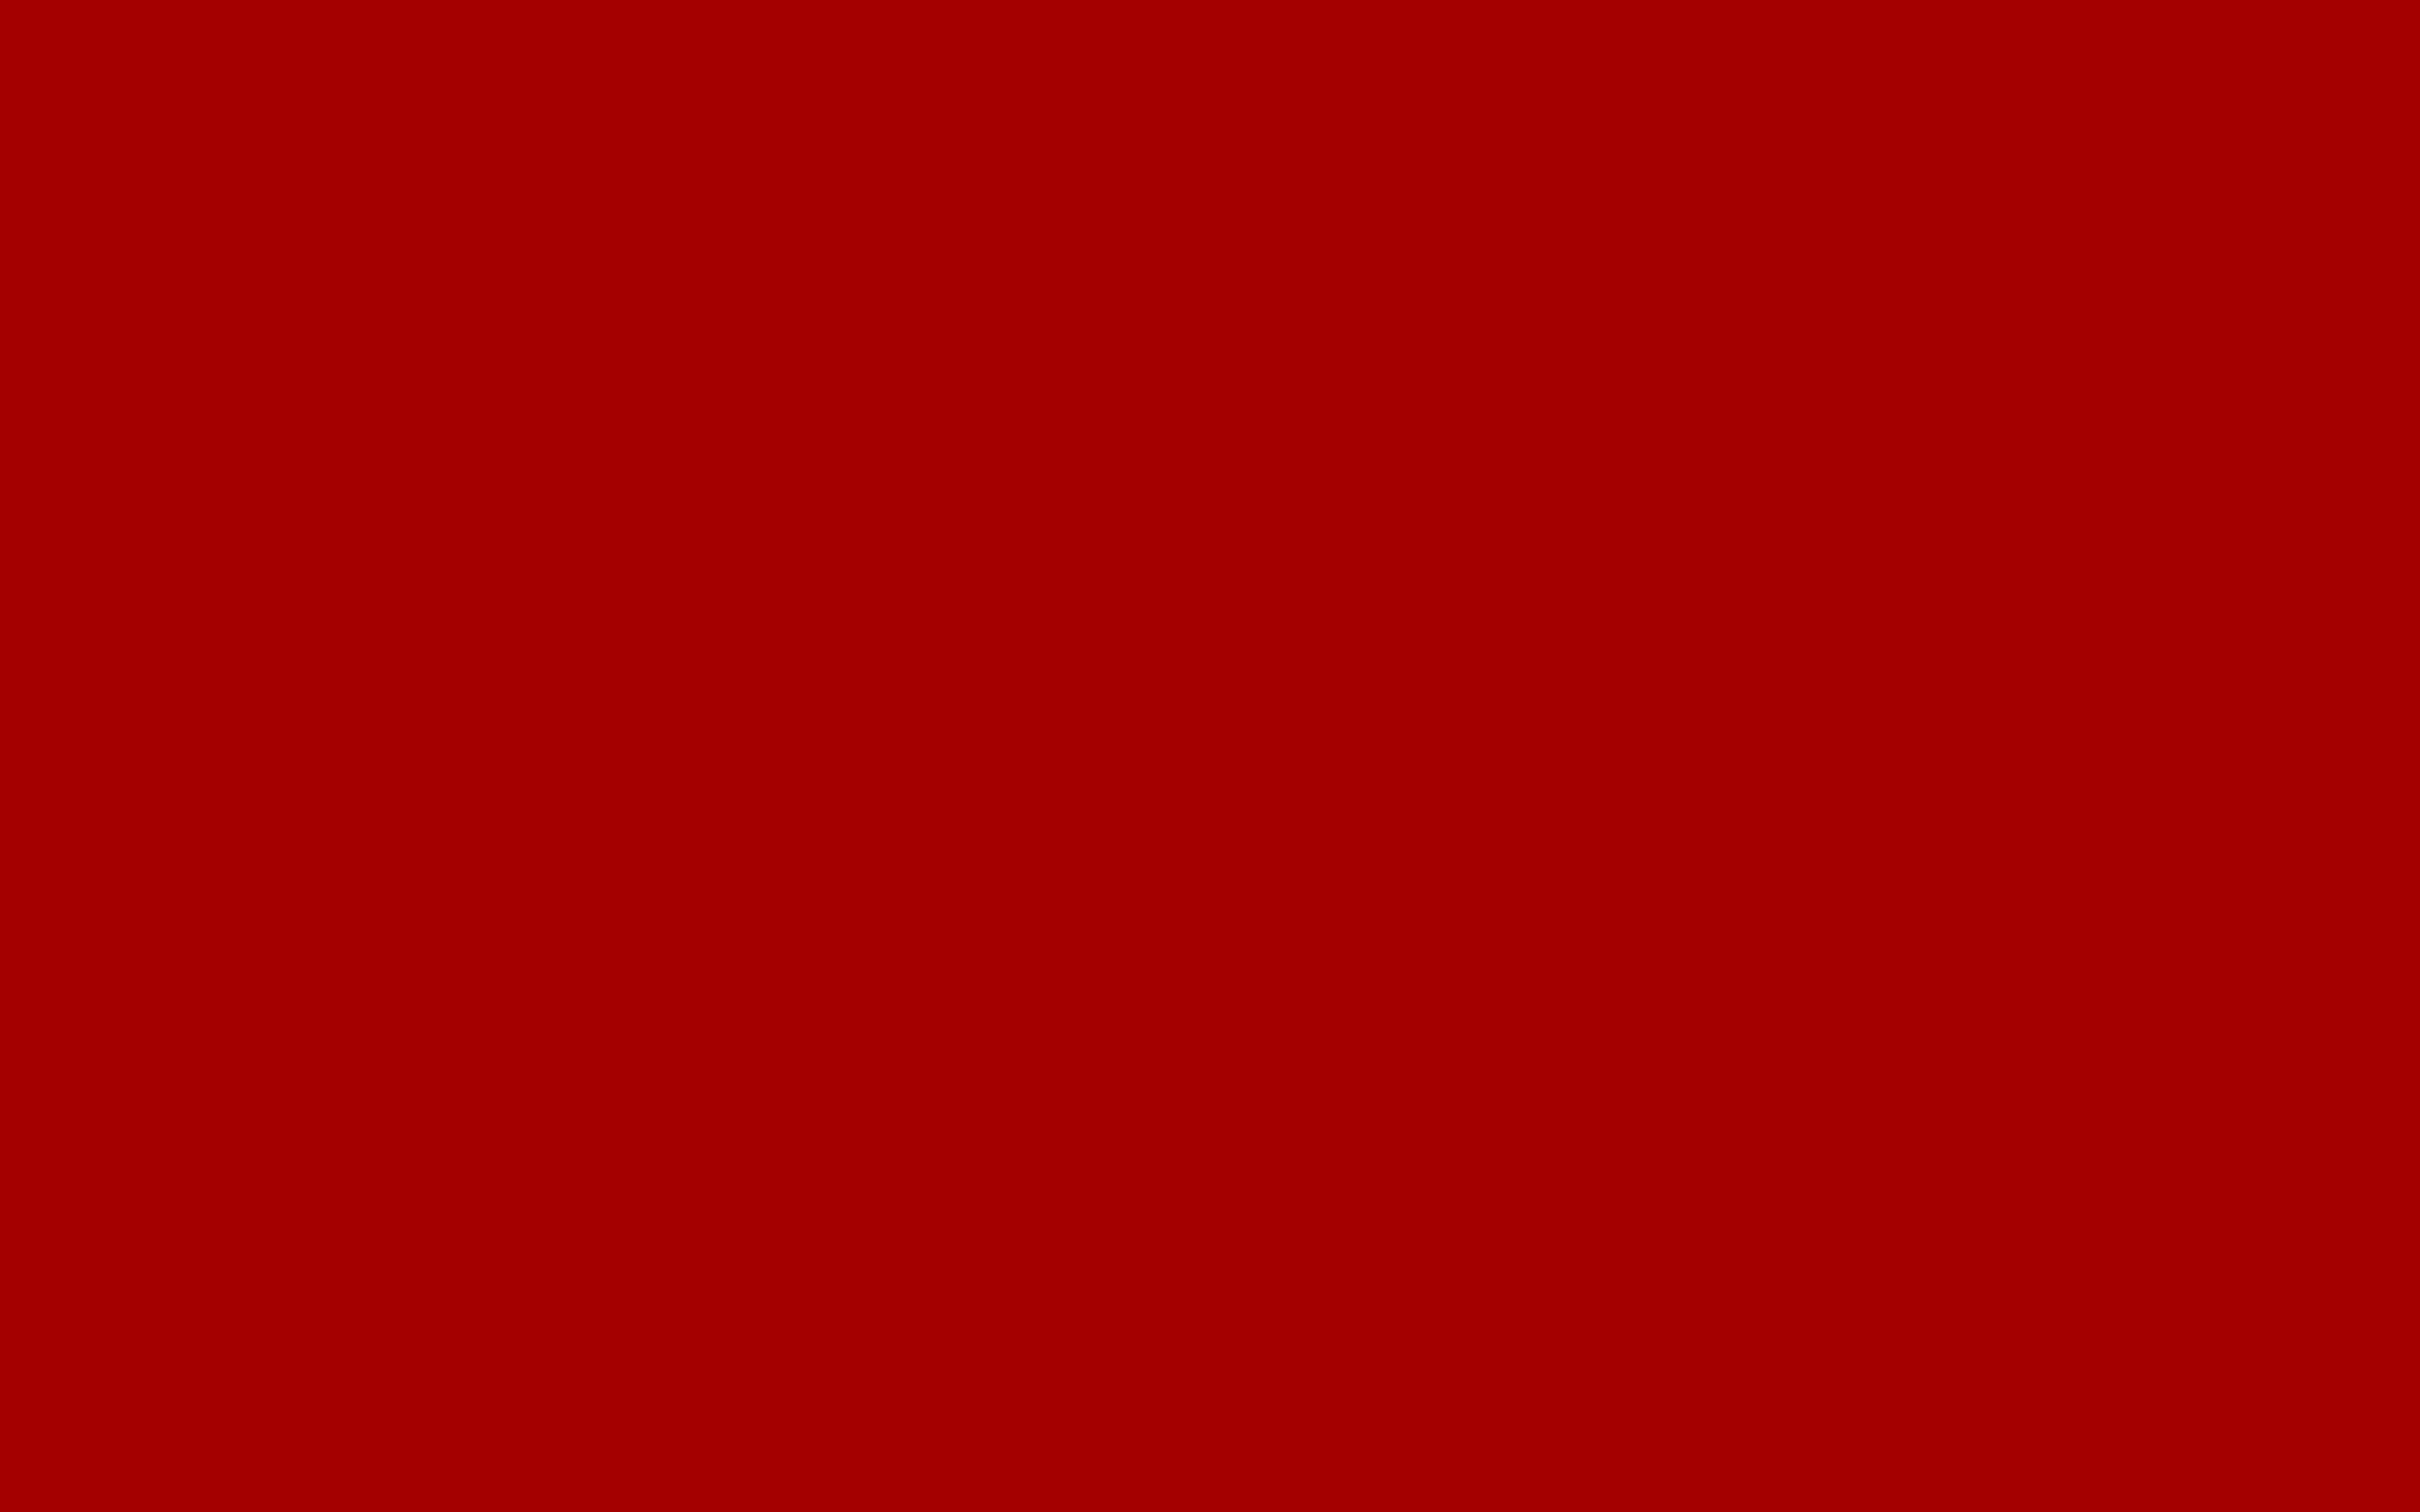 2560x1600 Dark Candy Apple Red Solid Color Background